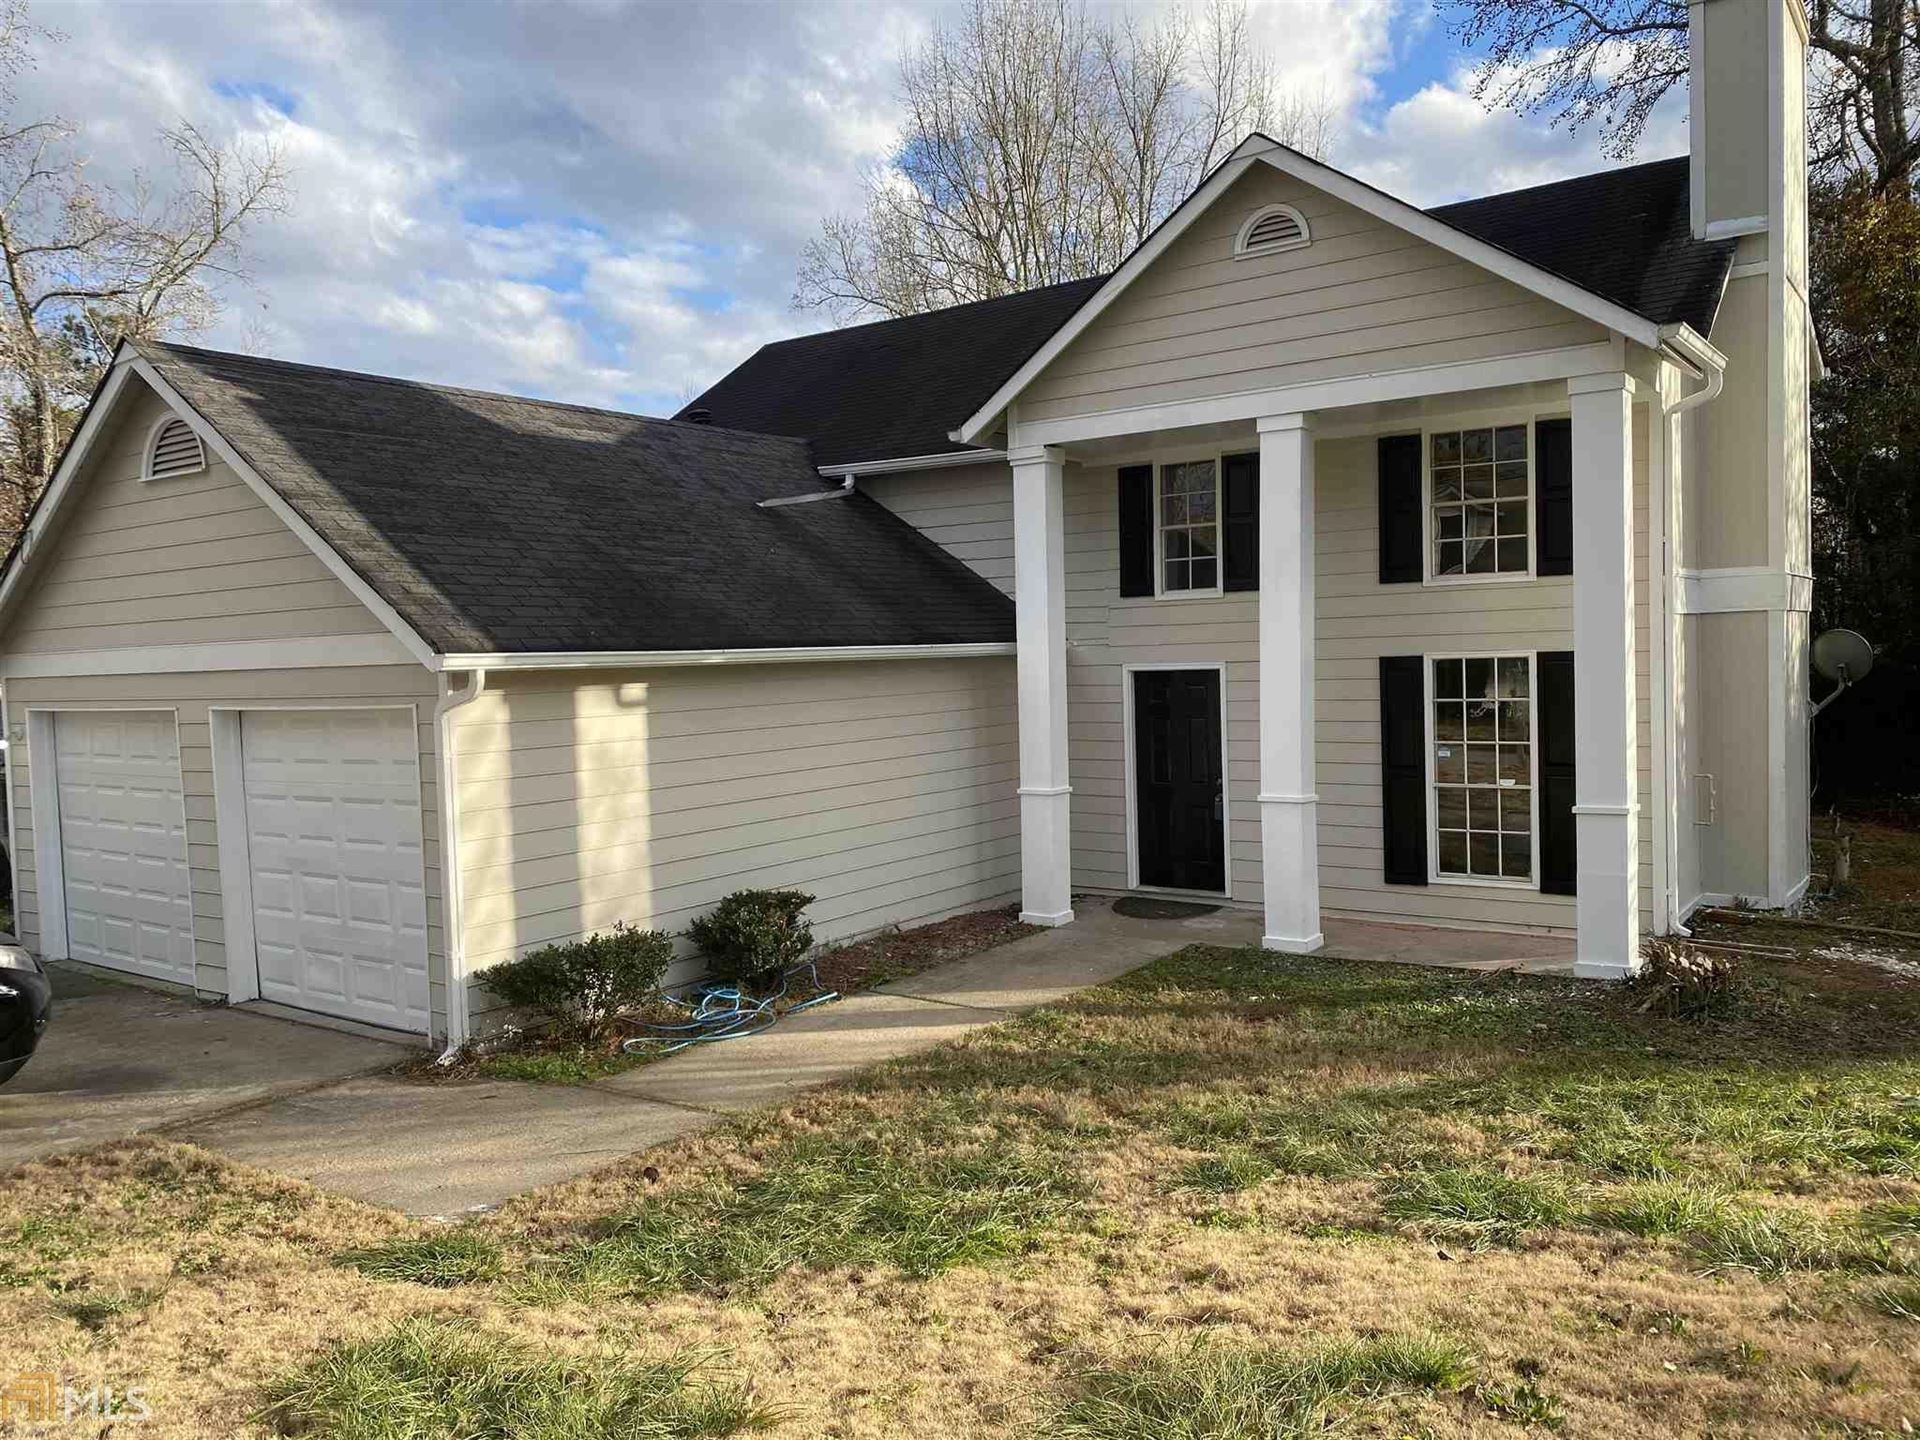 5550 Panola, Lithonia, GA 30058 - MLS#: 8873965